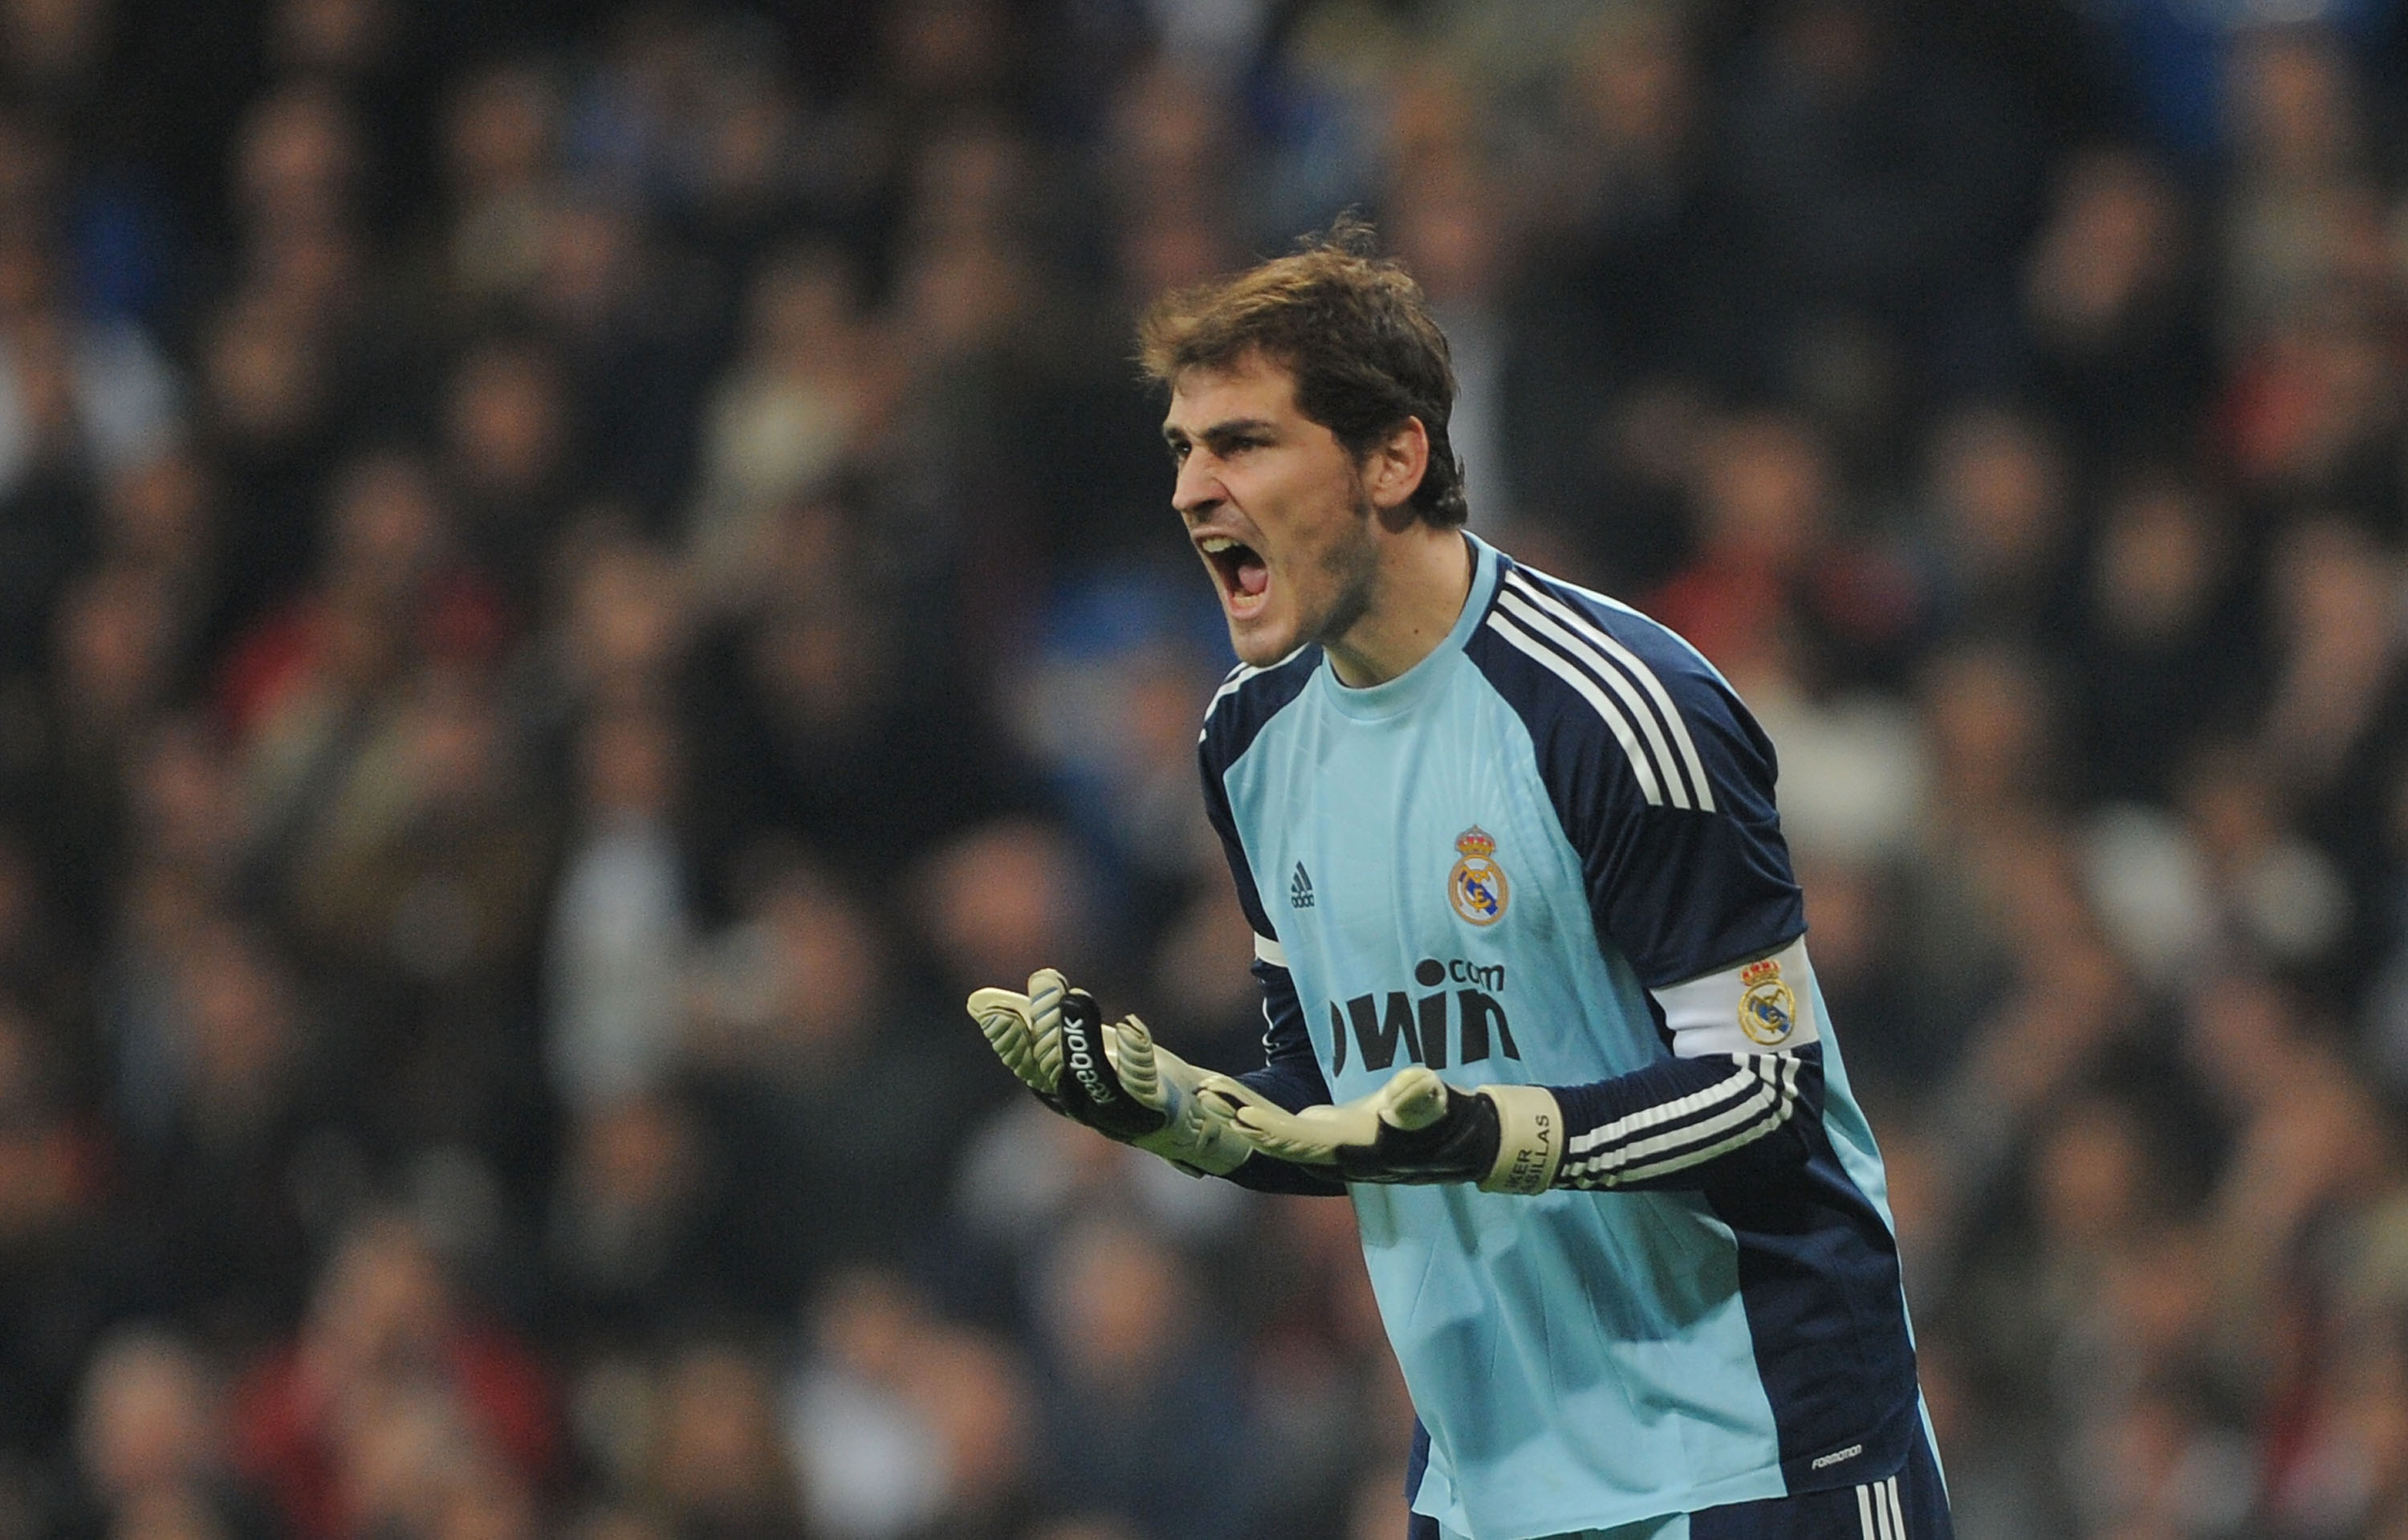 MADRID, SPAIN - JANUARY 13: Iker Casillas of Real Madrid reacts during the Copa del Rey quarter final first leg match between Real Madrid and Atletico Madrid at Estadio Santiago Bernabeu on January 13, 2011 in Madrid, Spain.  (Photo by Denis Doyle/Getty I